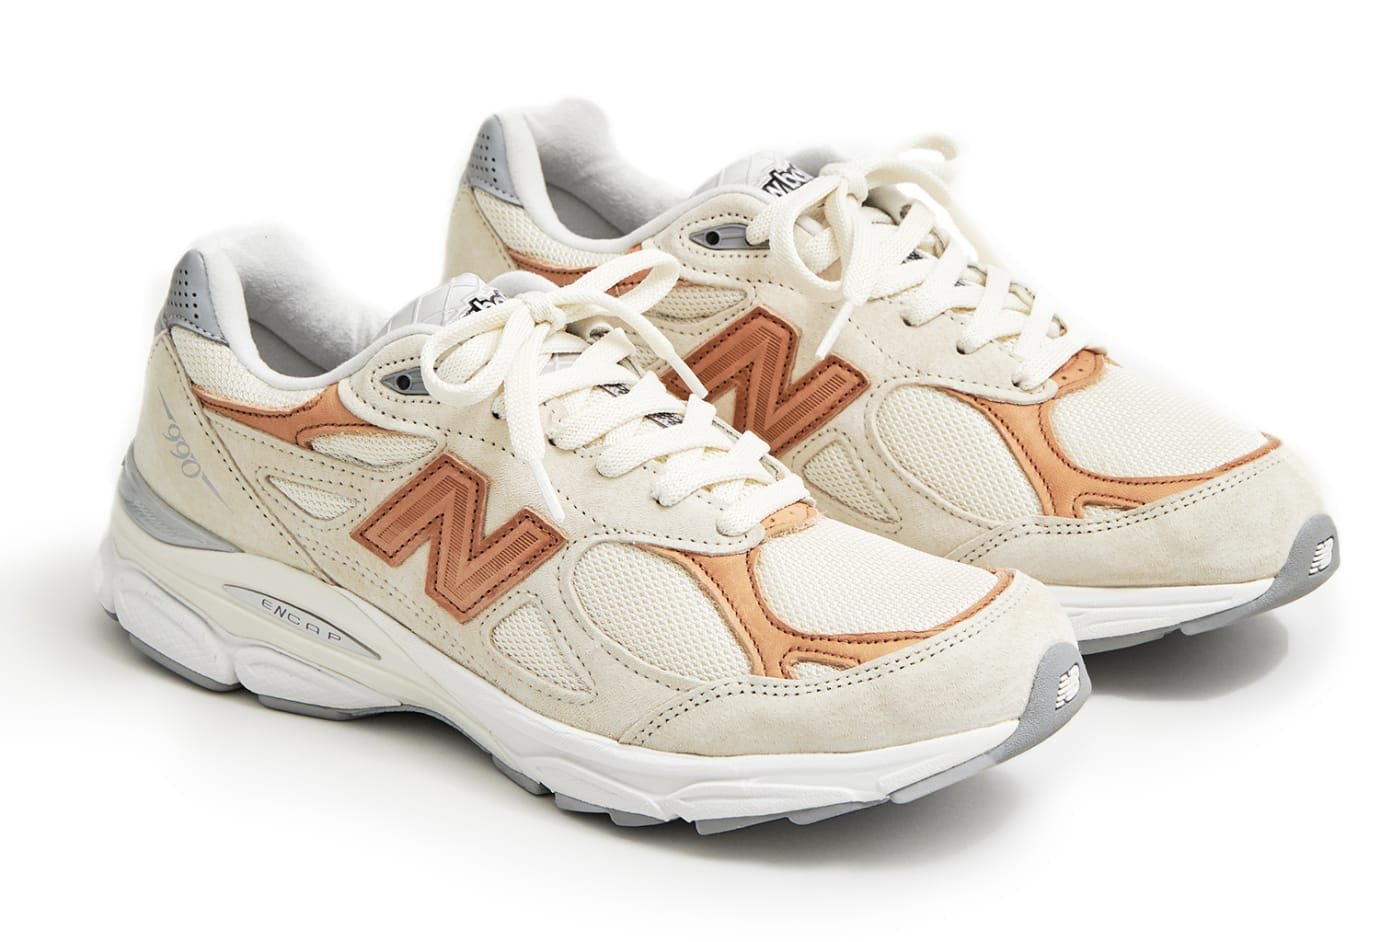 Todd Snyder x New Balance 990v3 'Pale Ale' (Pair)